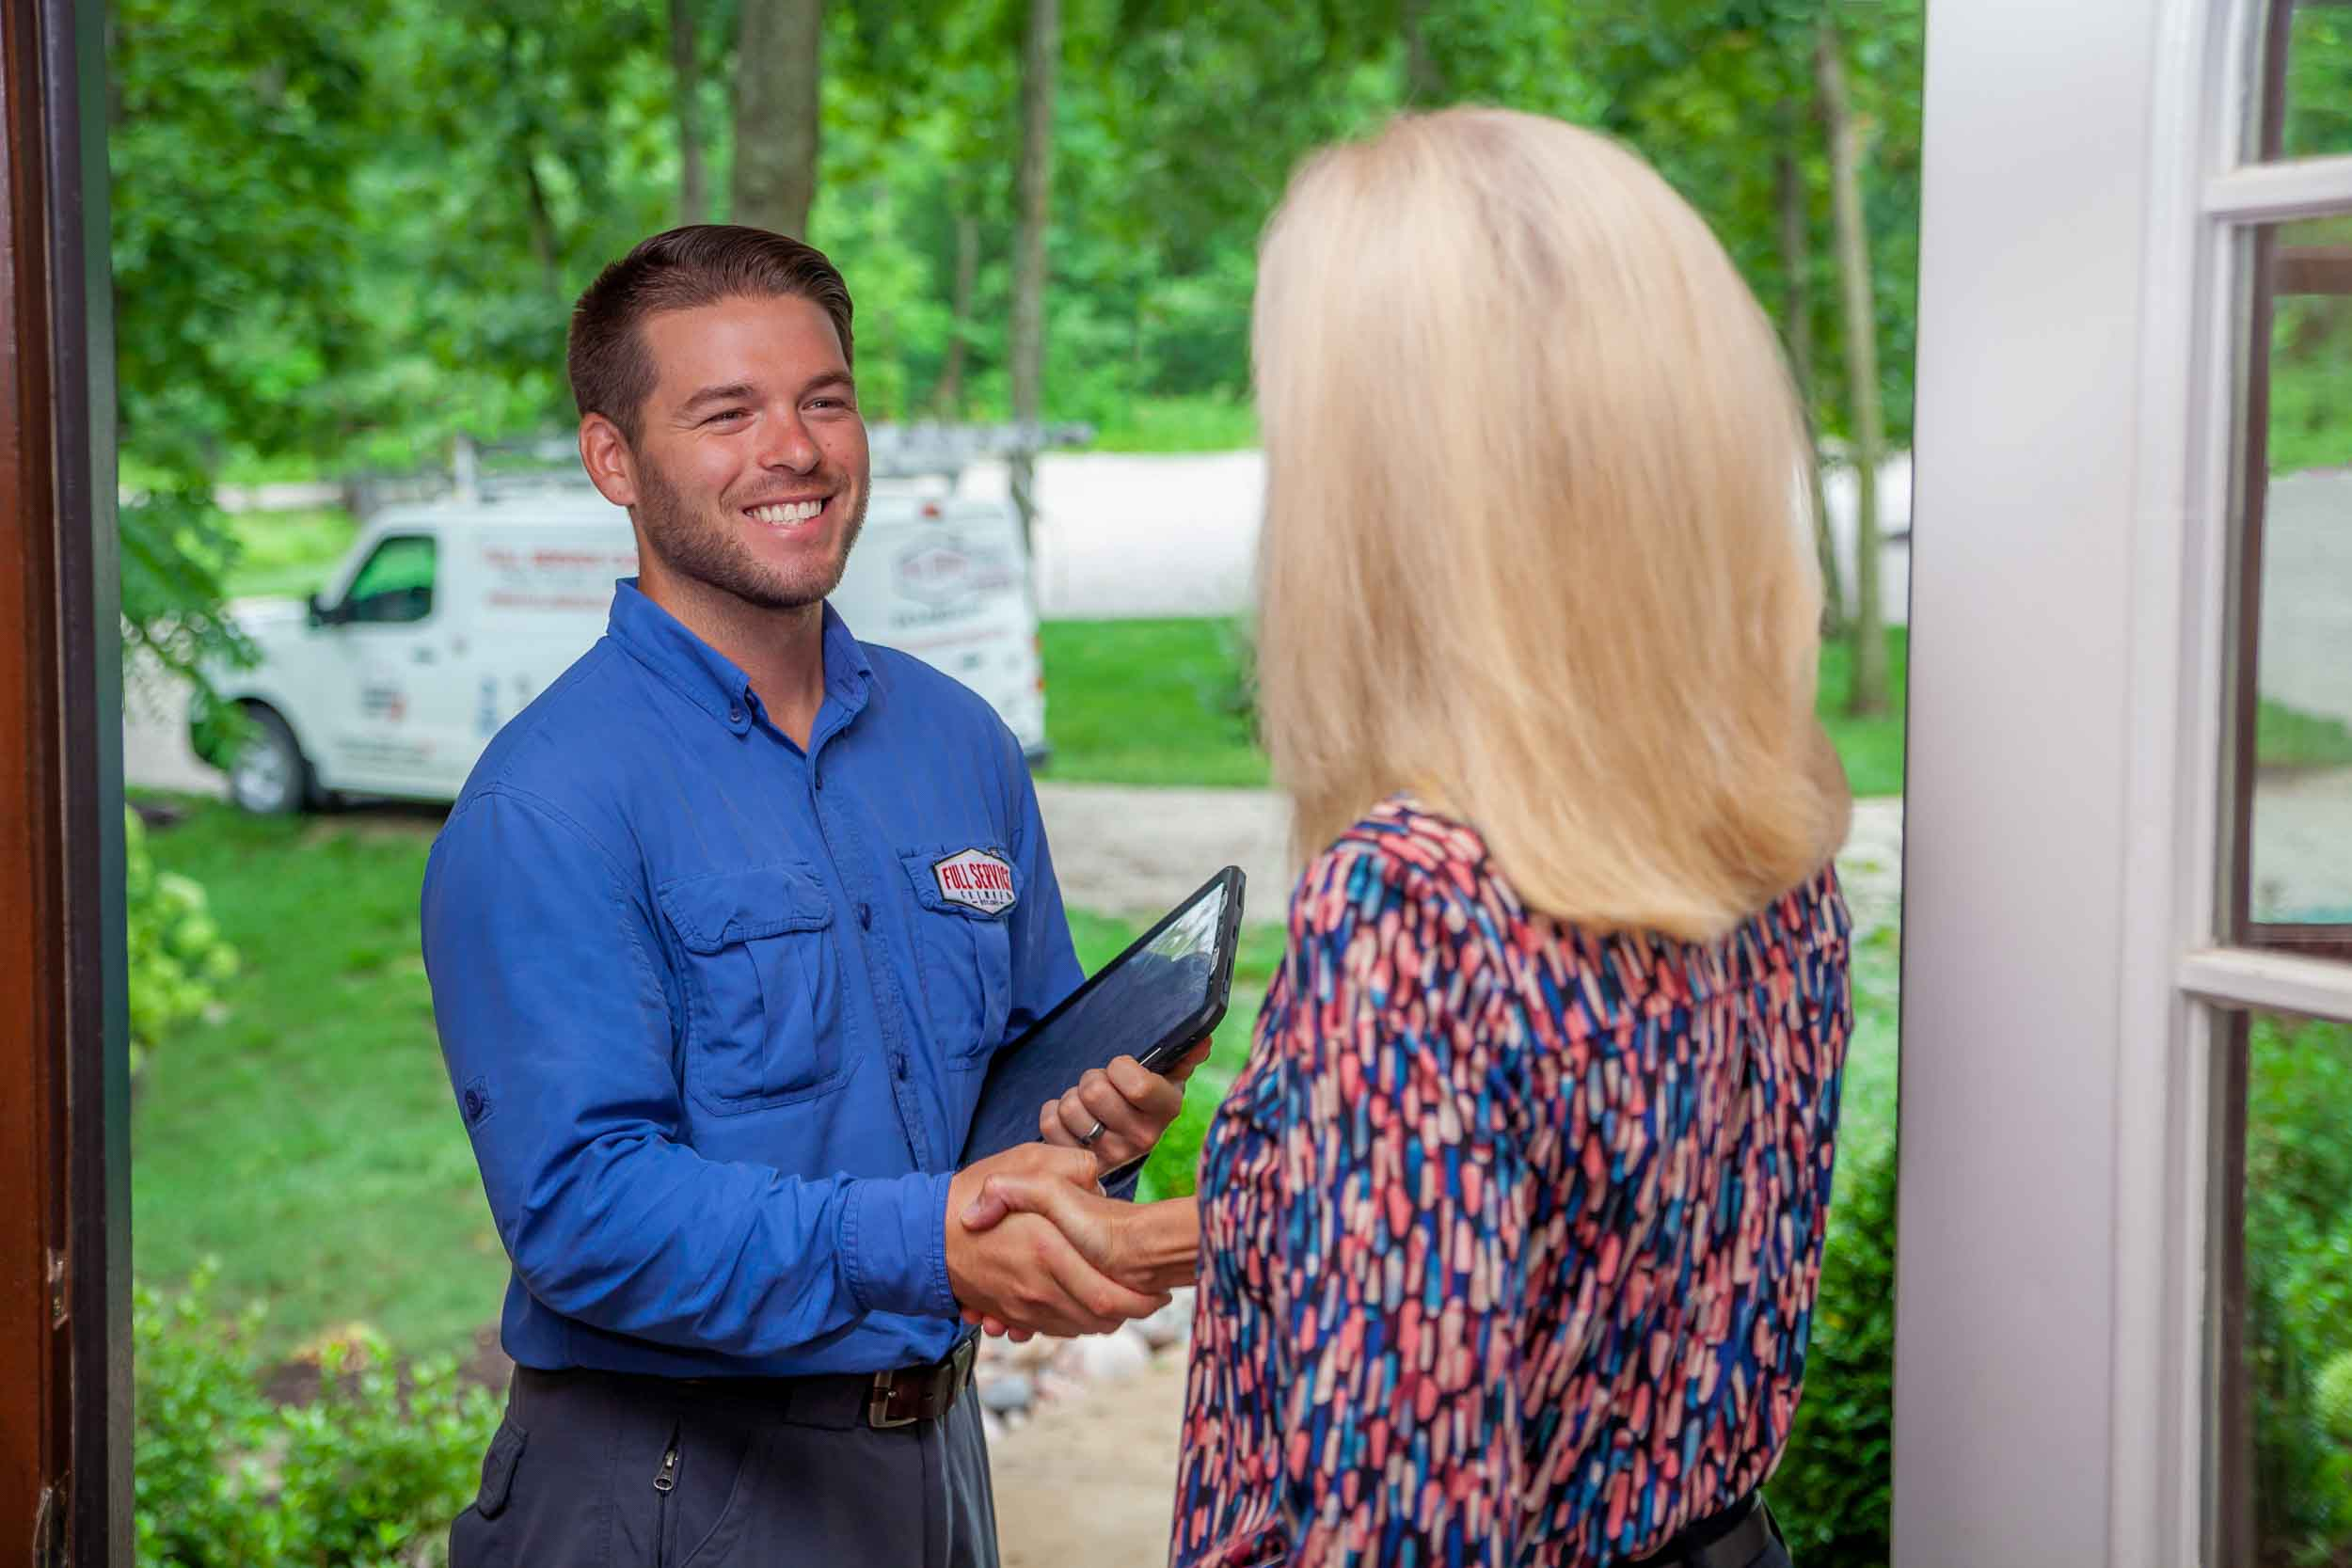 Hire the Best Chimney Sweeps in Kansas City